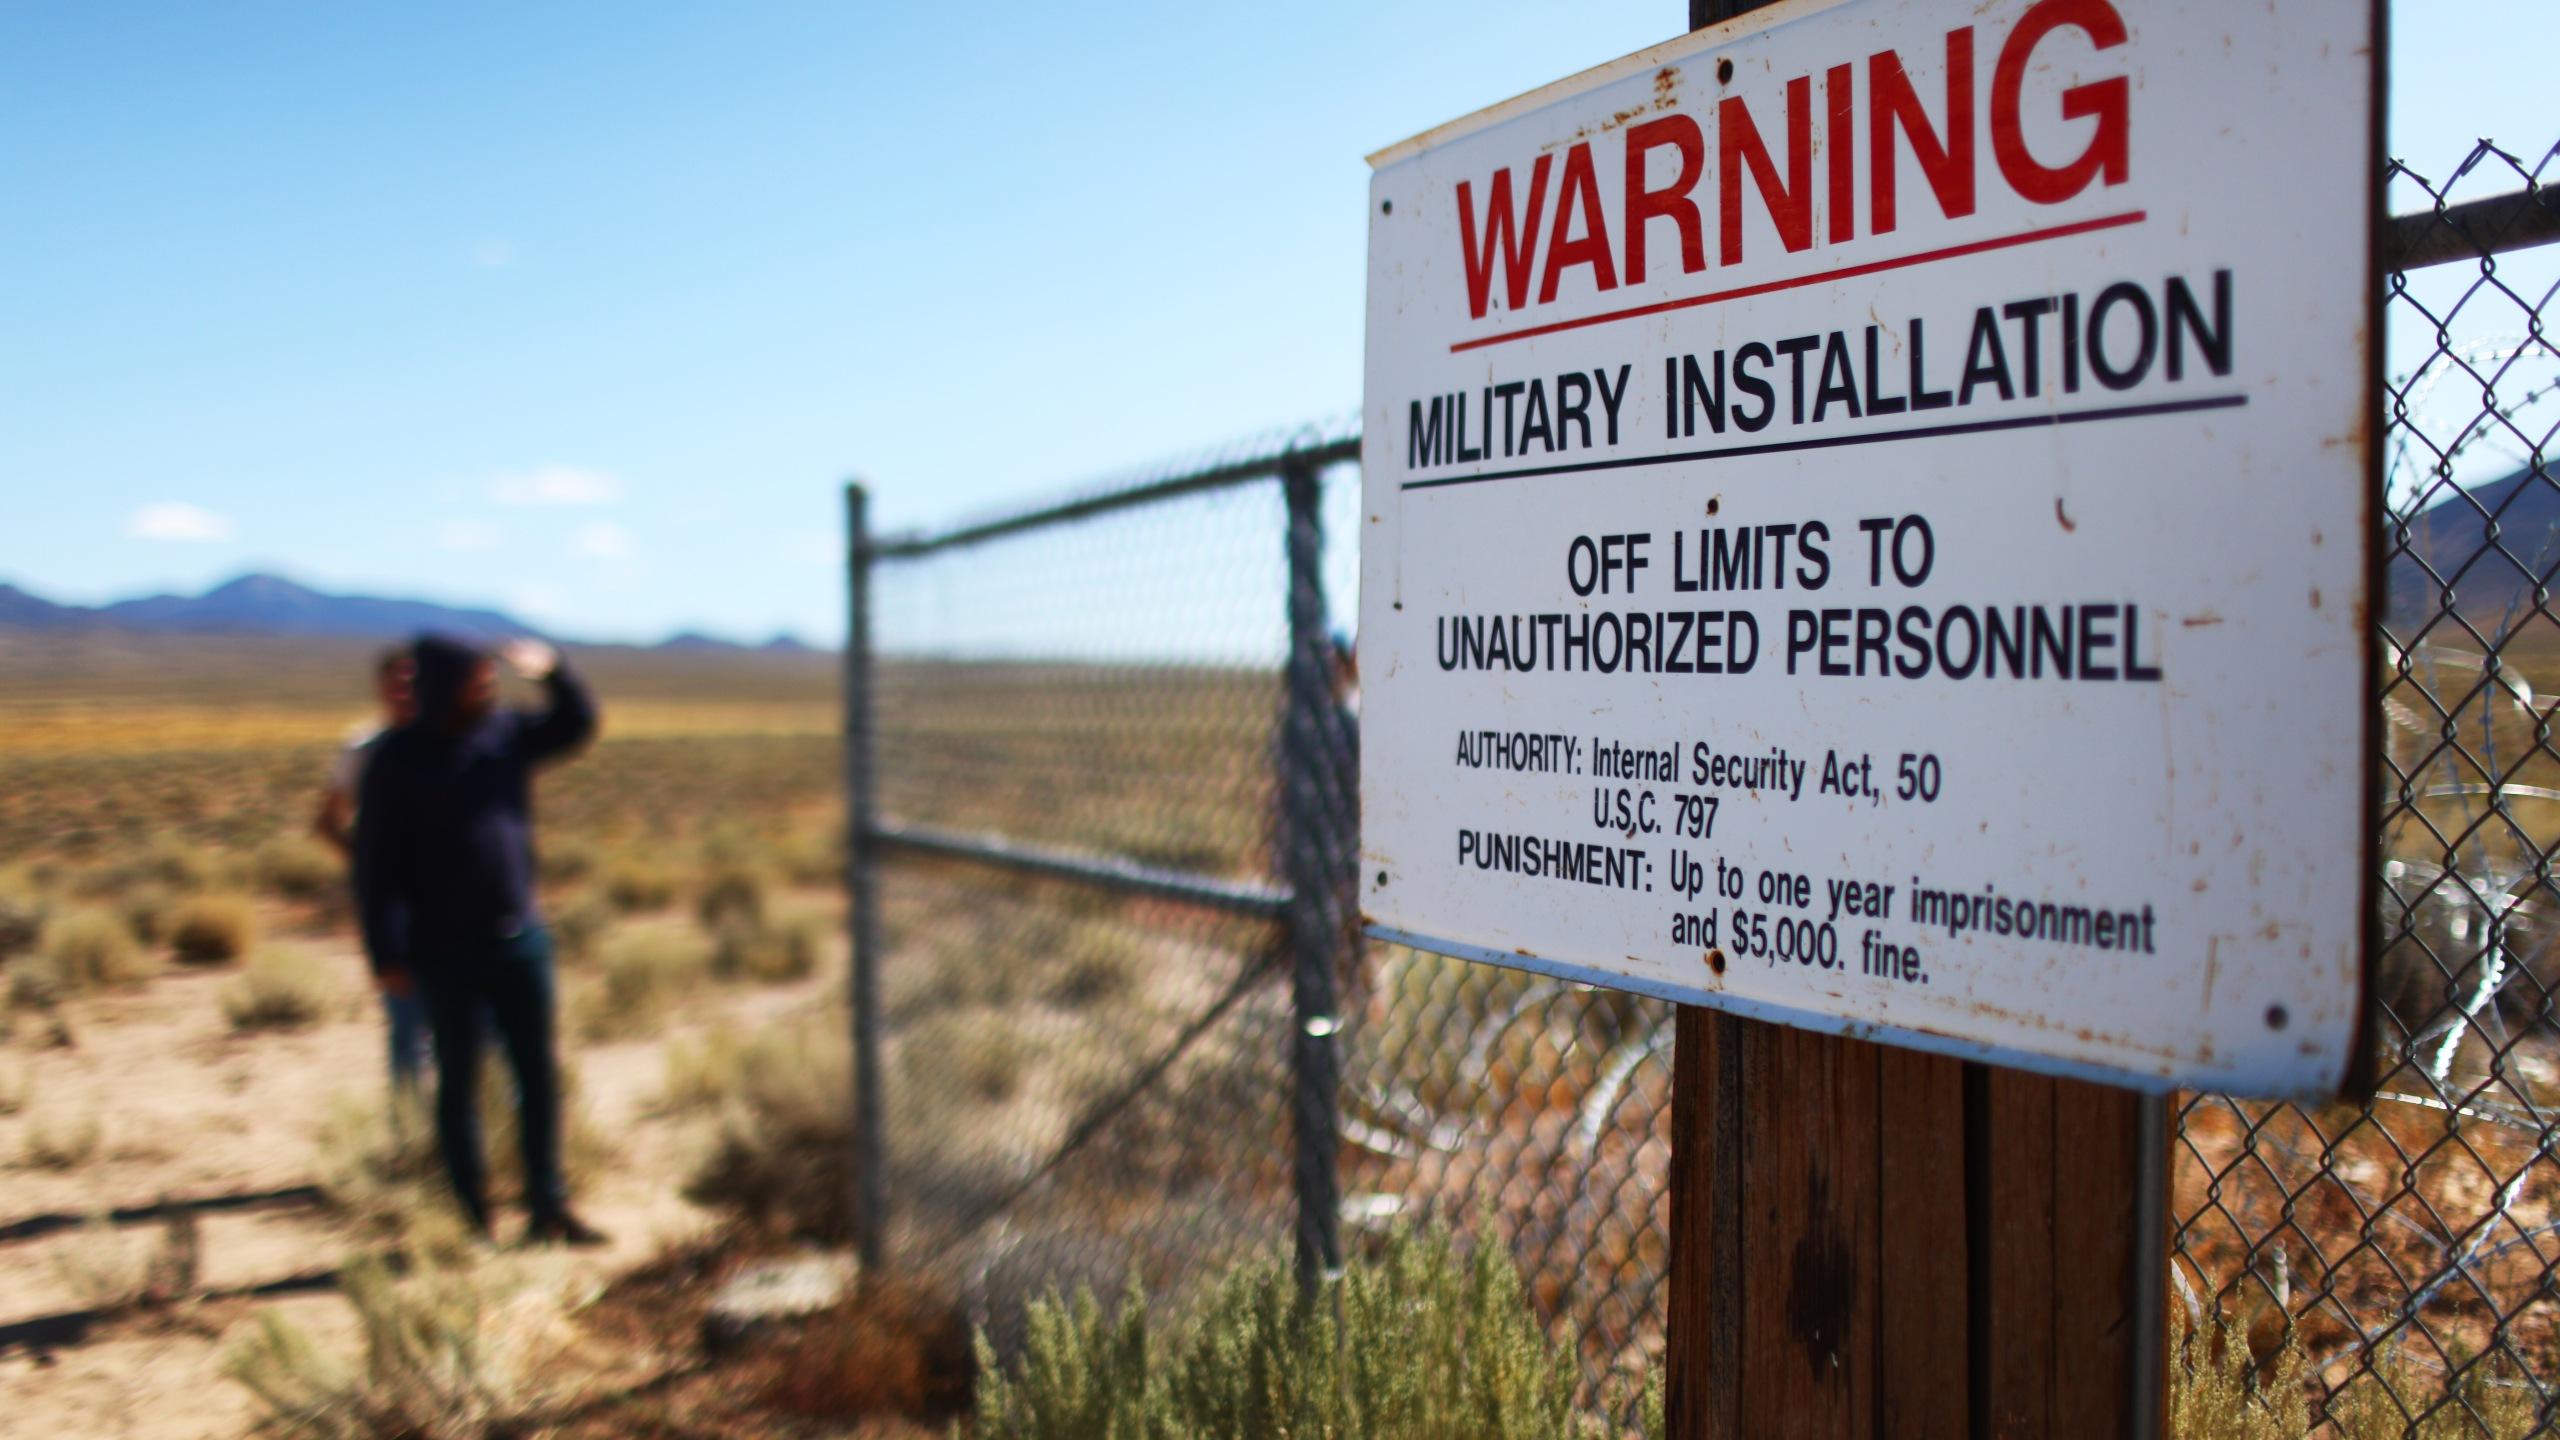 People gather at an entrance gate to the Nevada Test and Training Range, the official name for the facility containing what is known as Area 51, near Rachel, Nevada, on Sept. 20, 2019. (Credit: Mario Tama / Getty Images)